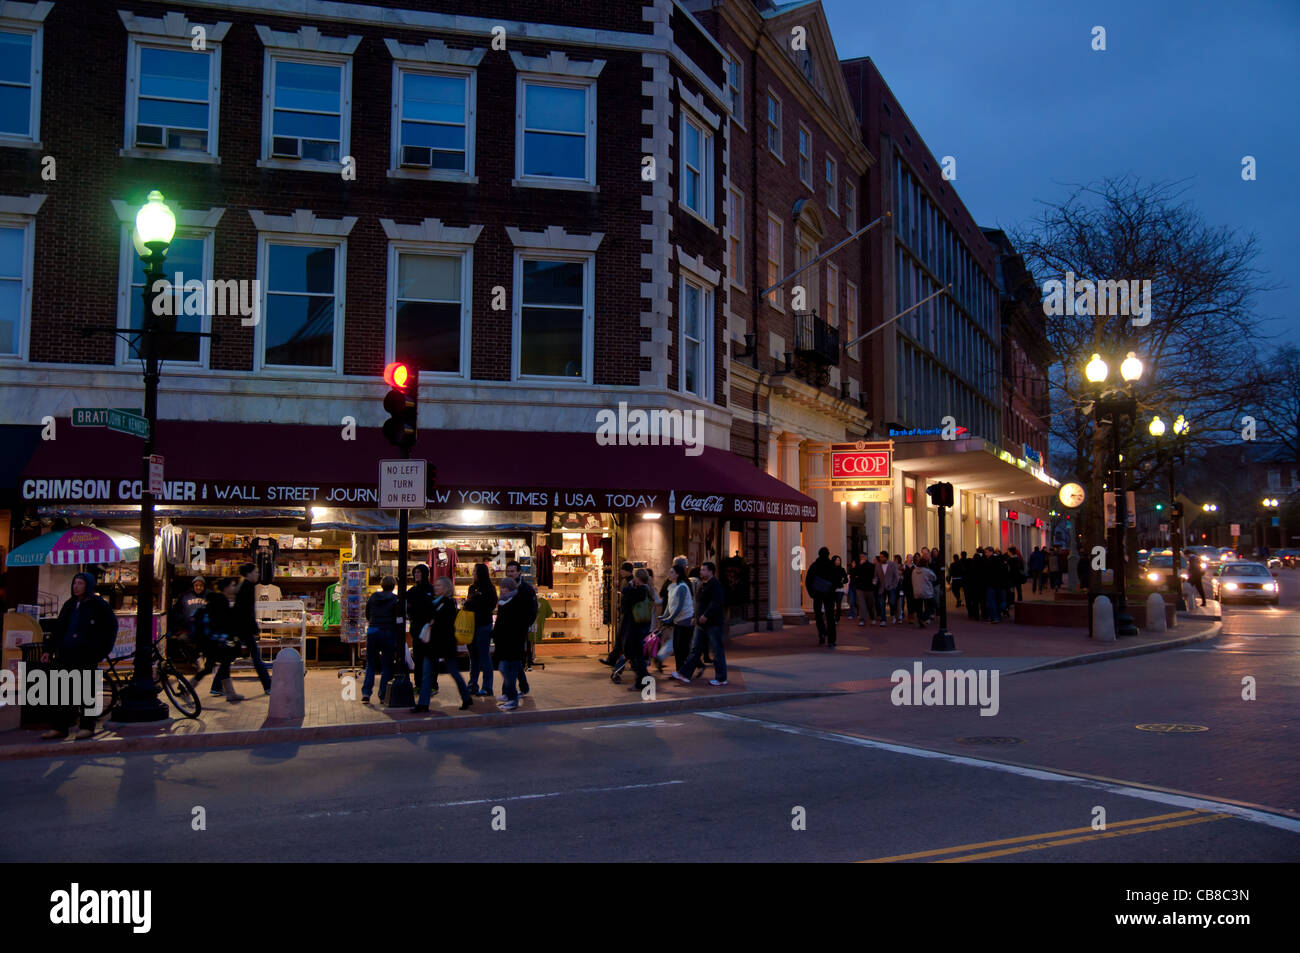 Intersection on Harvard Square with student bookshops and restaurants in Cambridge, MA Stock Photo